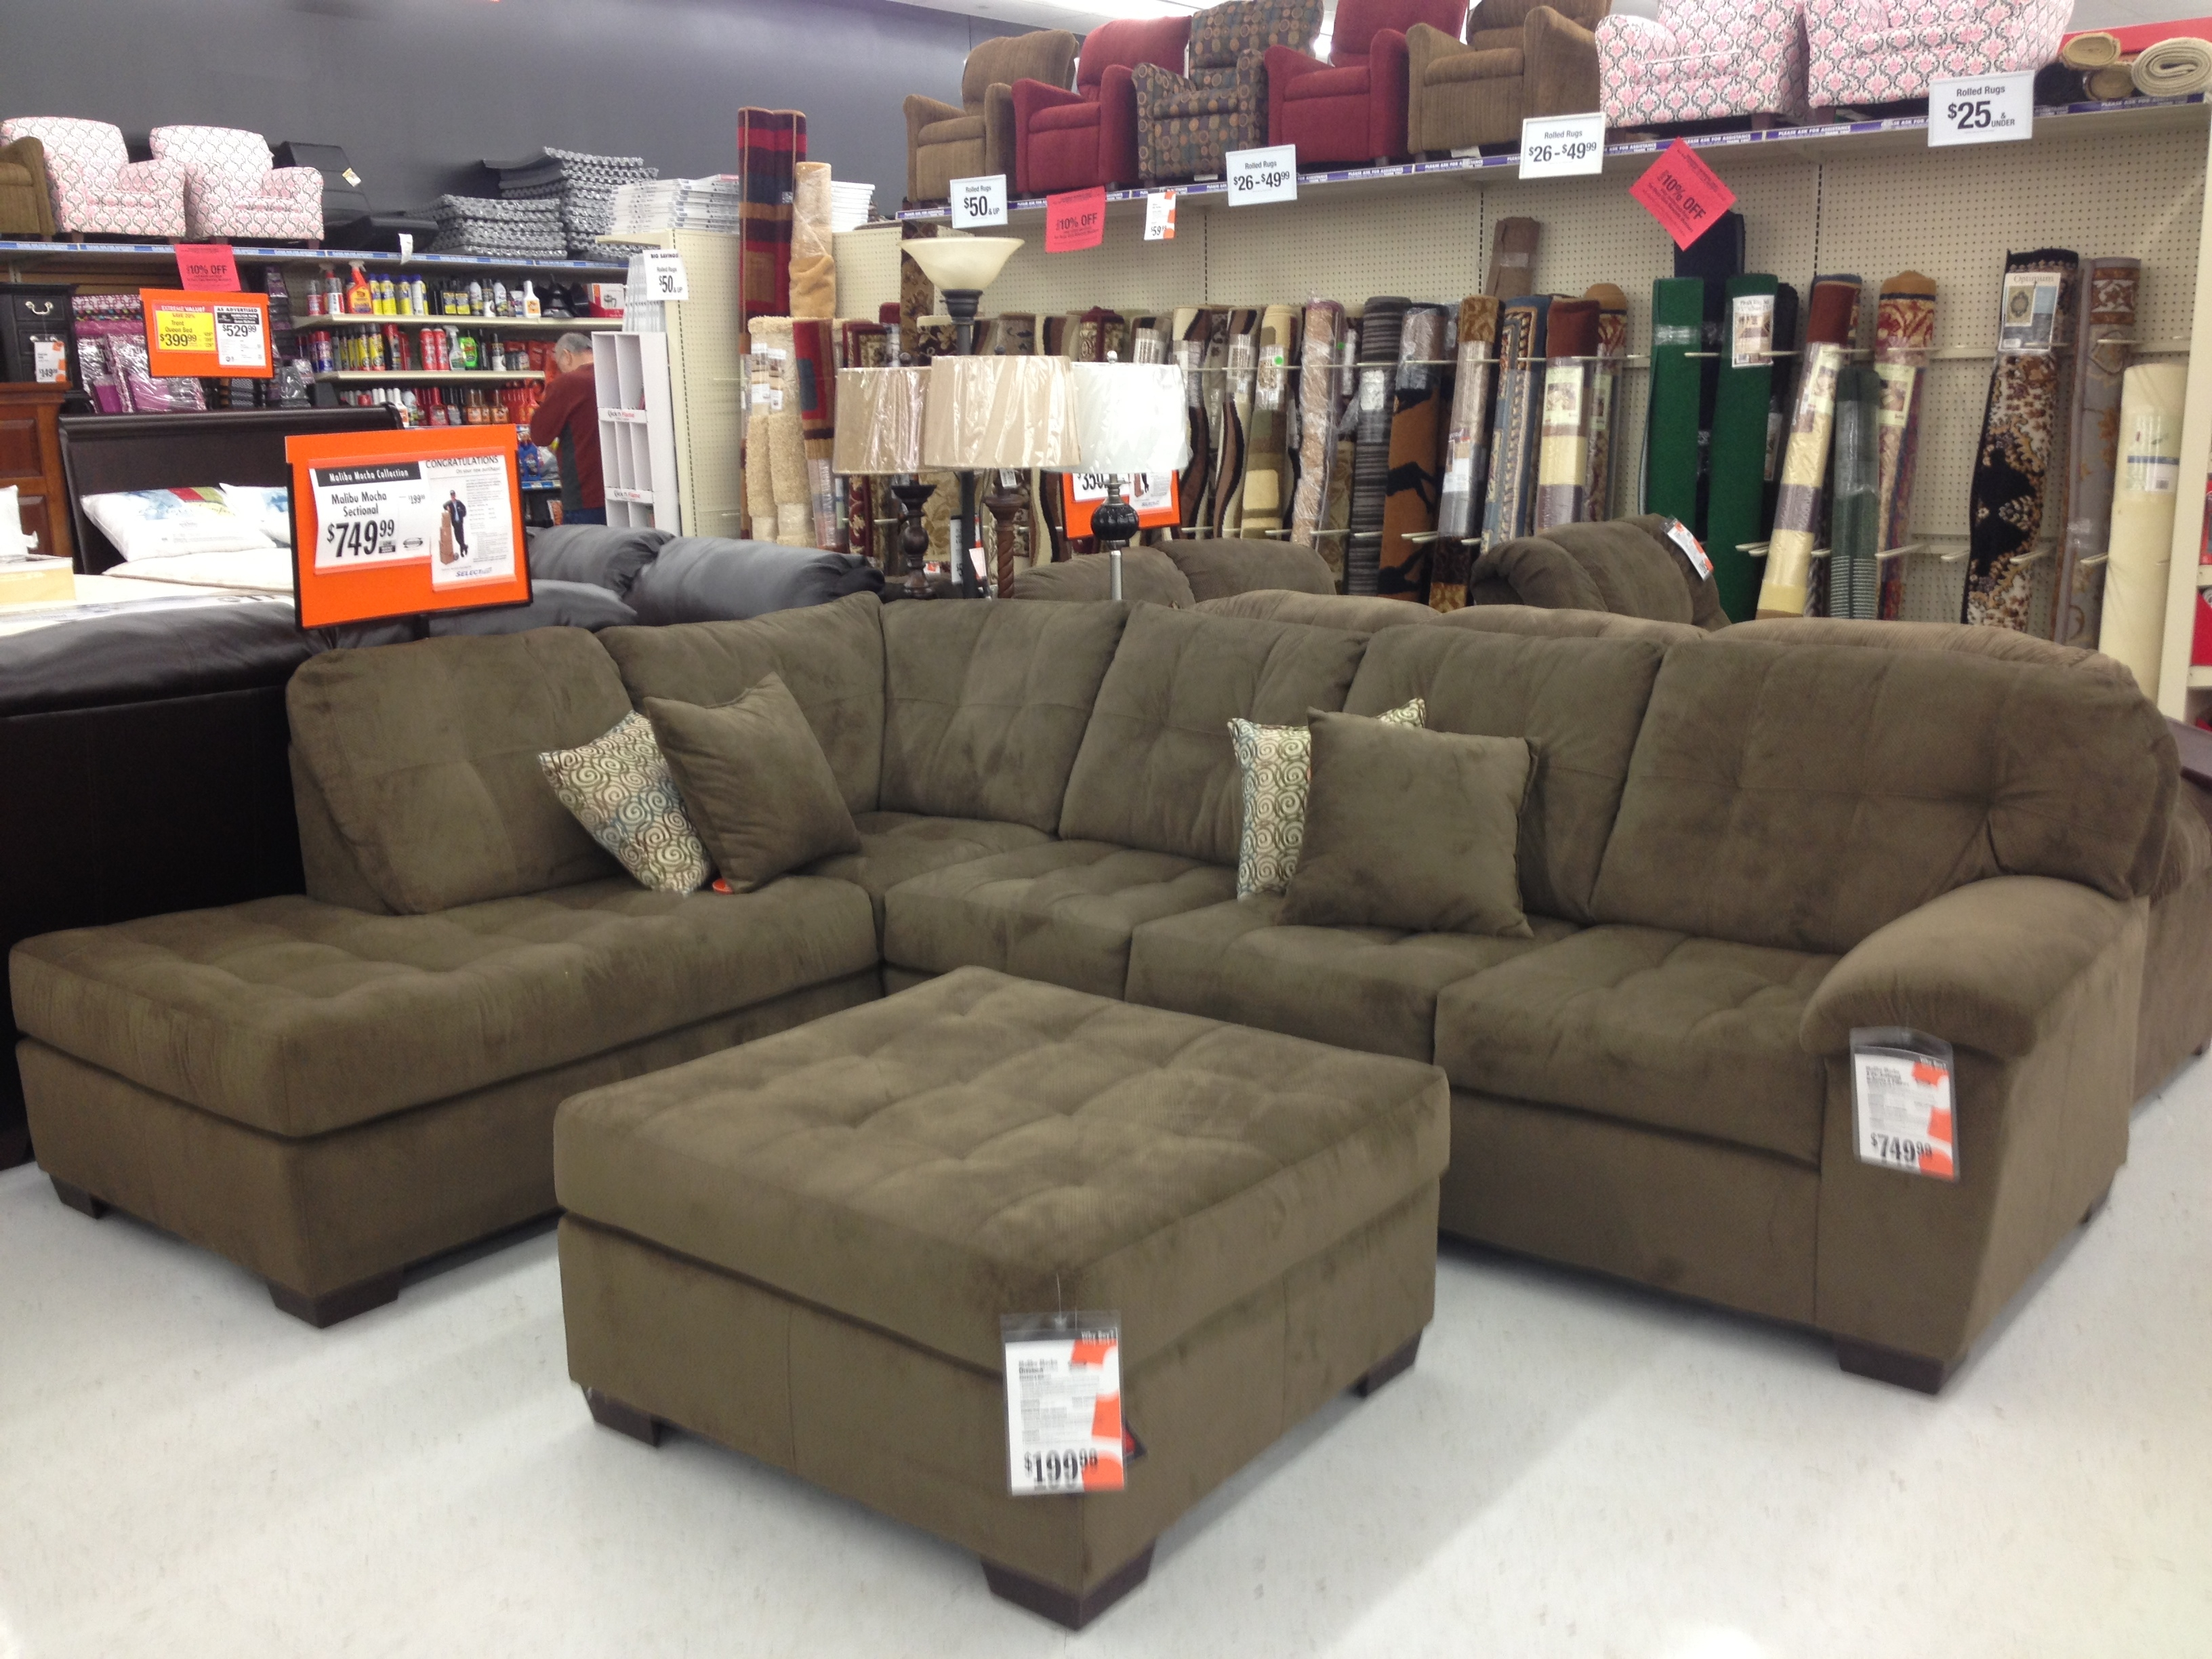 Sofas Center Big Lots Sleeperas Couches And At Leather In Within Big Lots Sofas (Image 14 of 15)